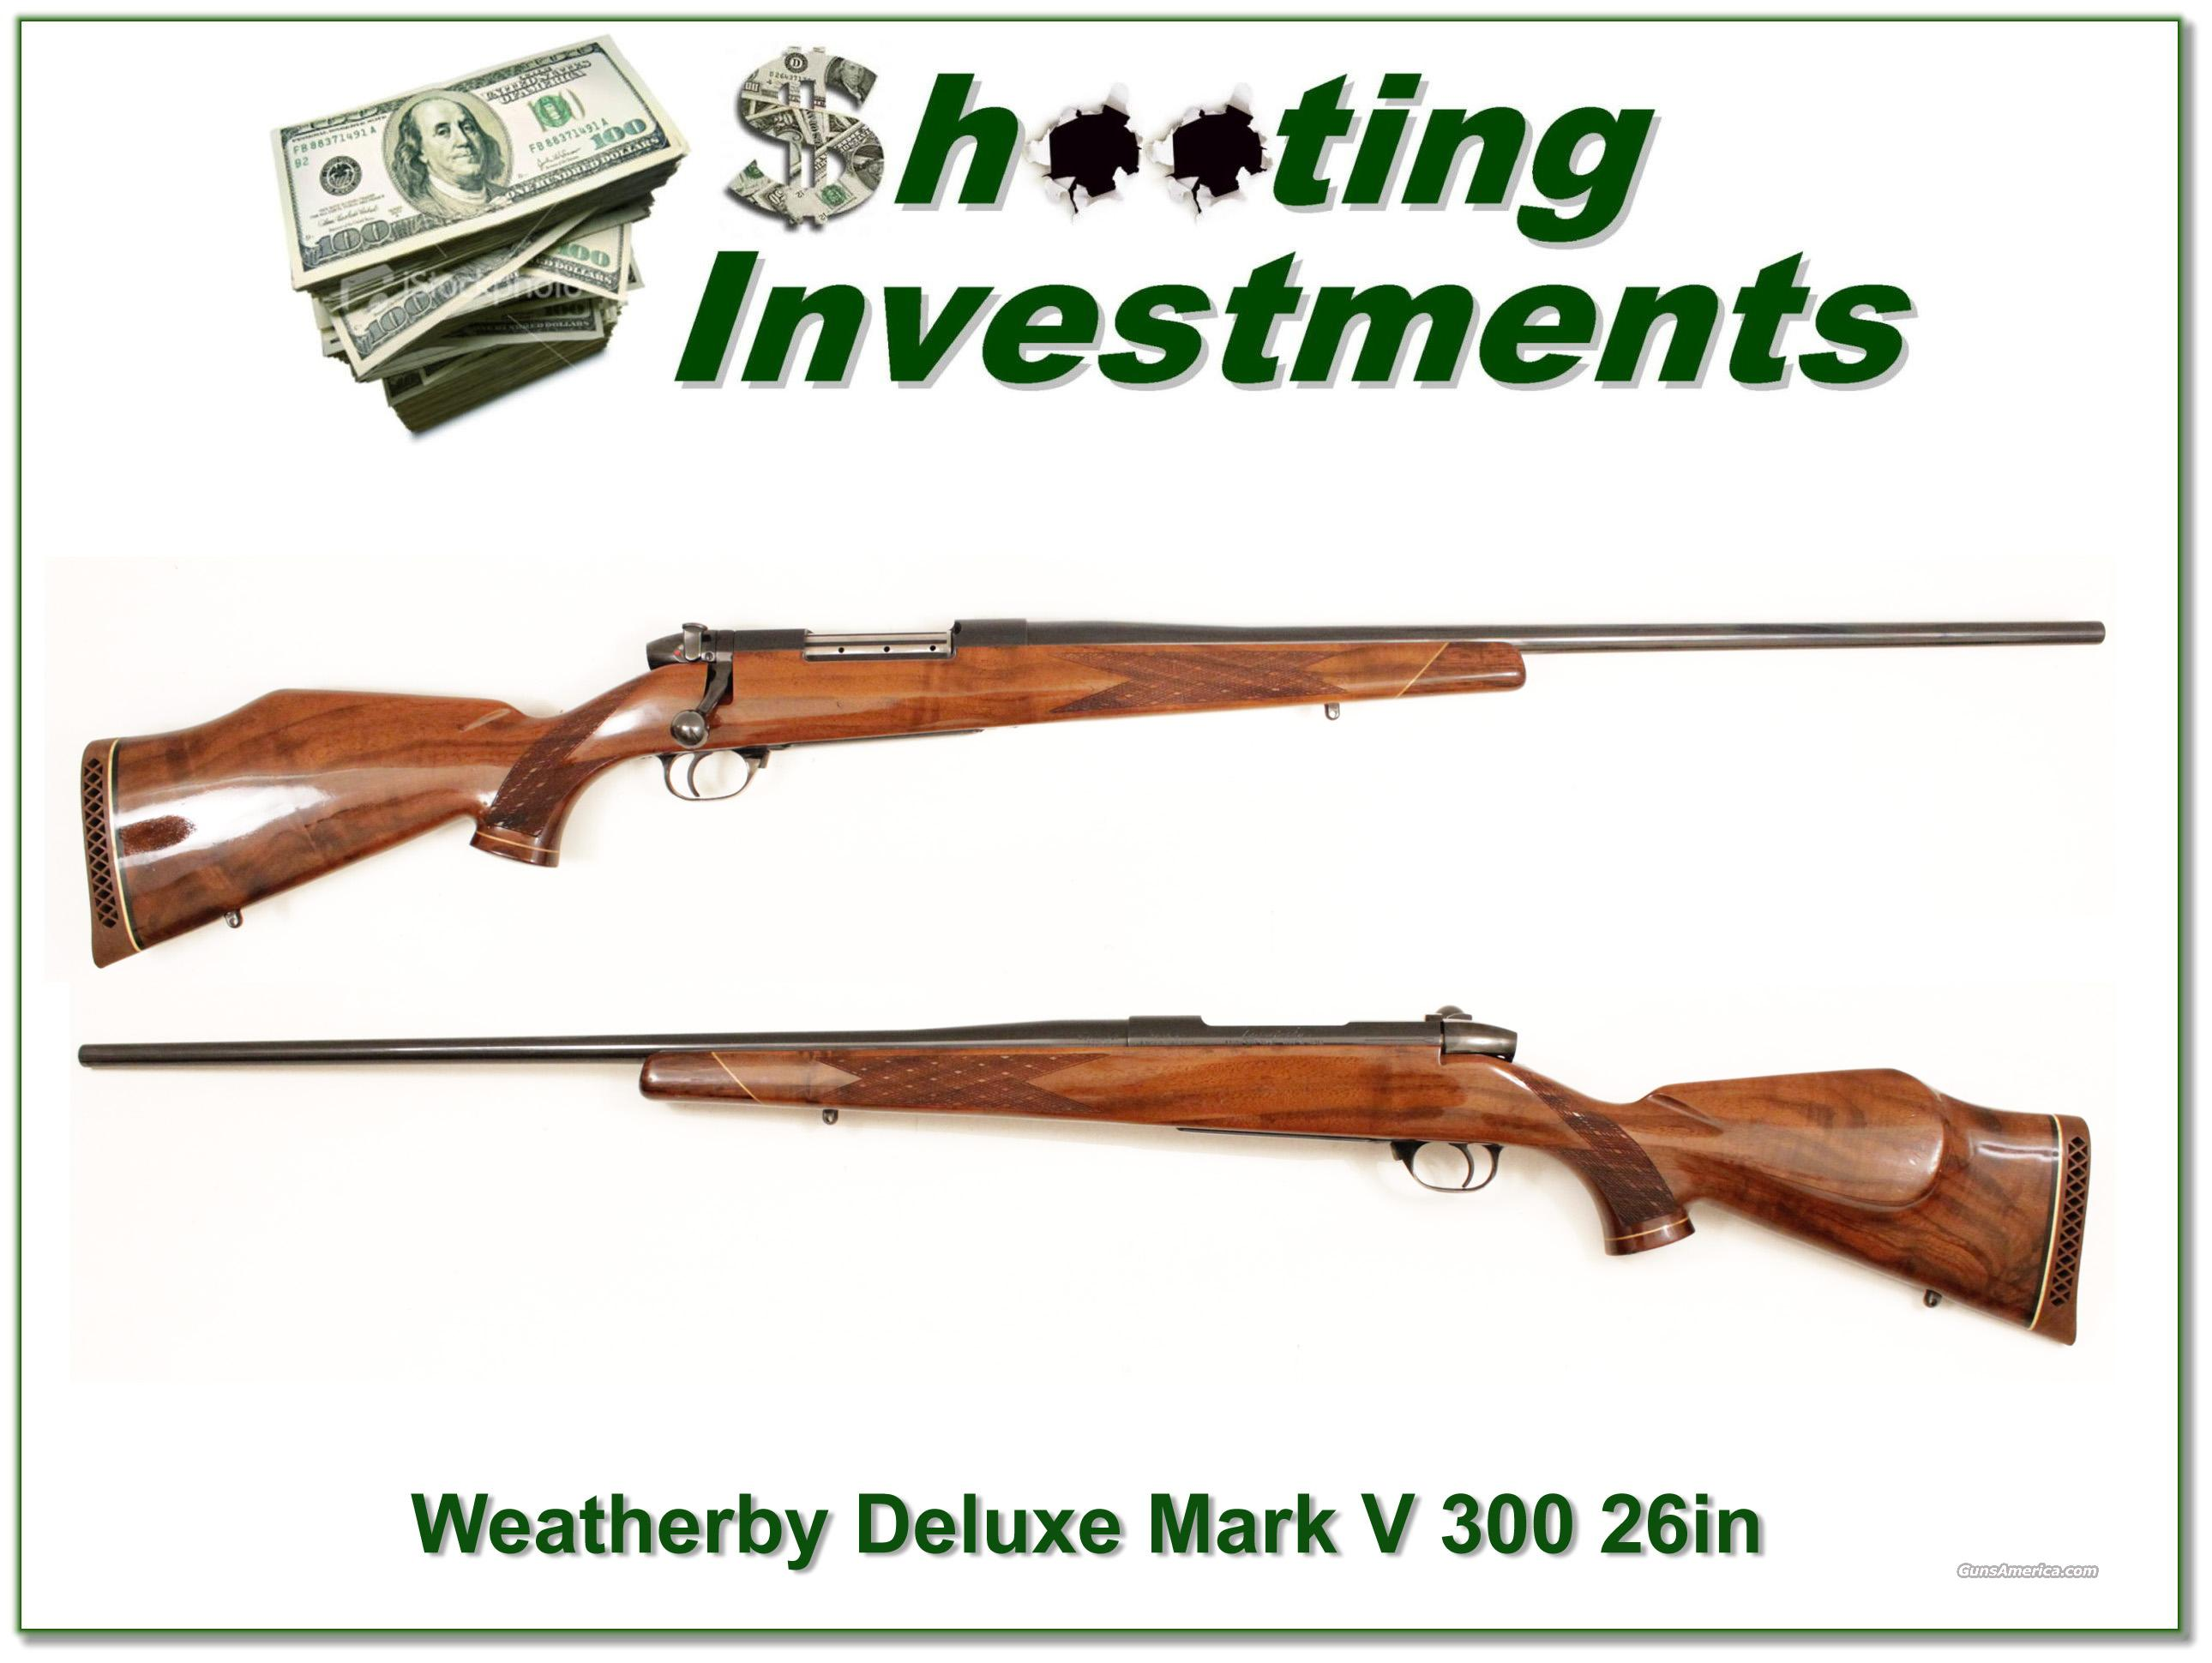 Weatherby Mark V Deluxe 300 26in Exc Cond  Guns > Rifles > Weatherby Rifles > Sporting